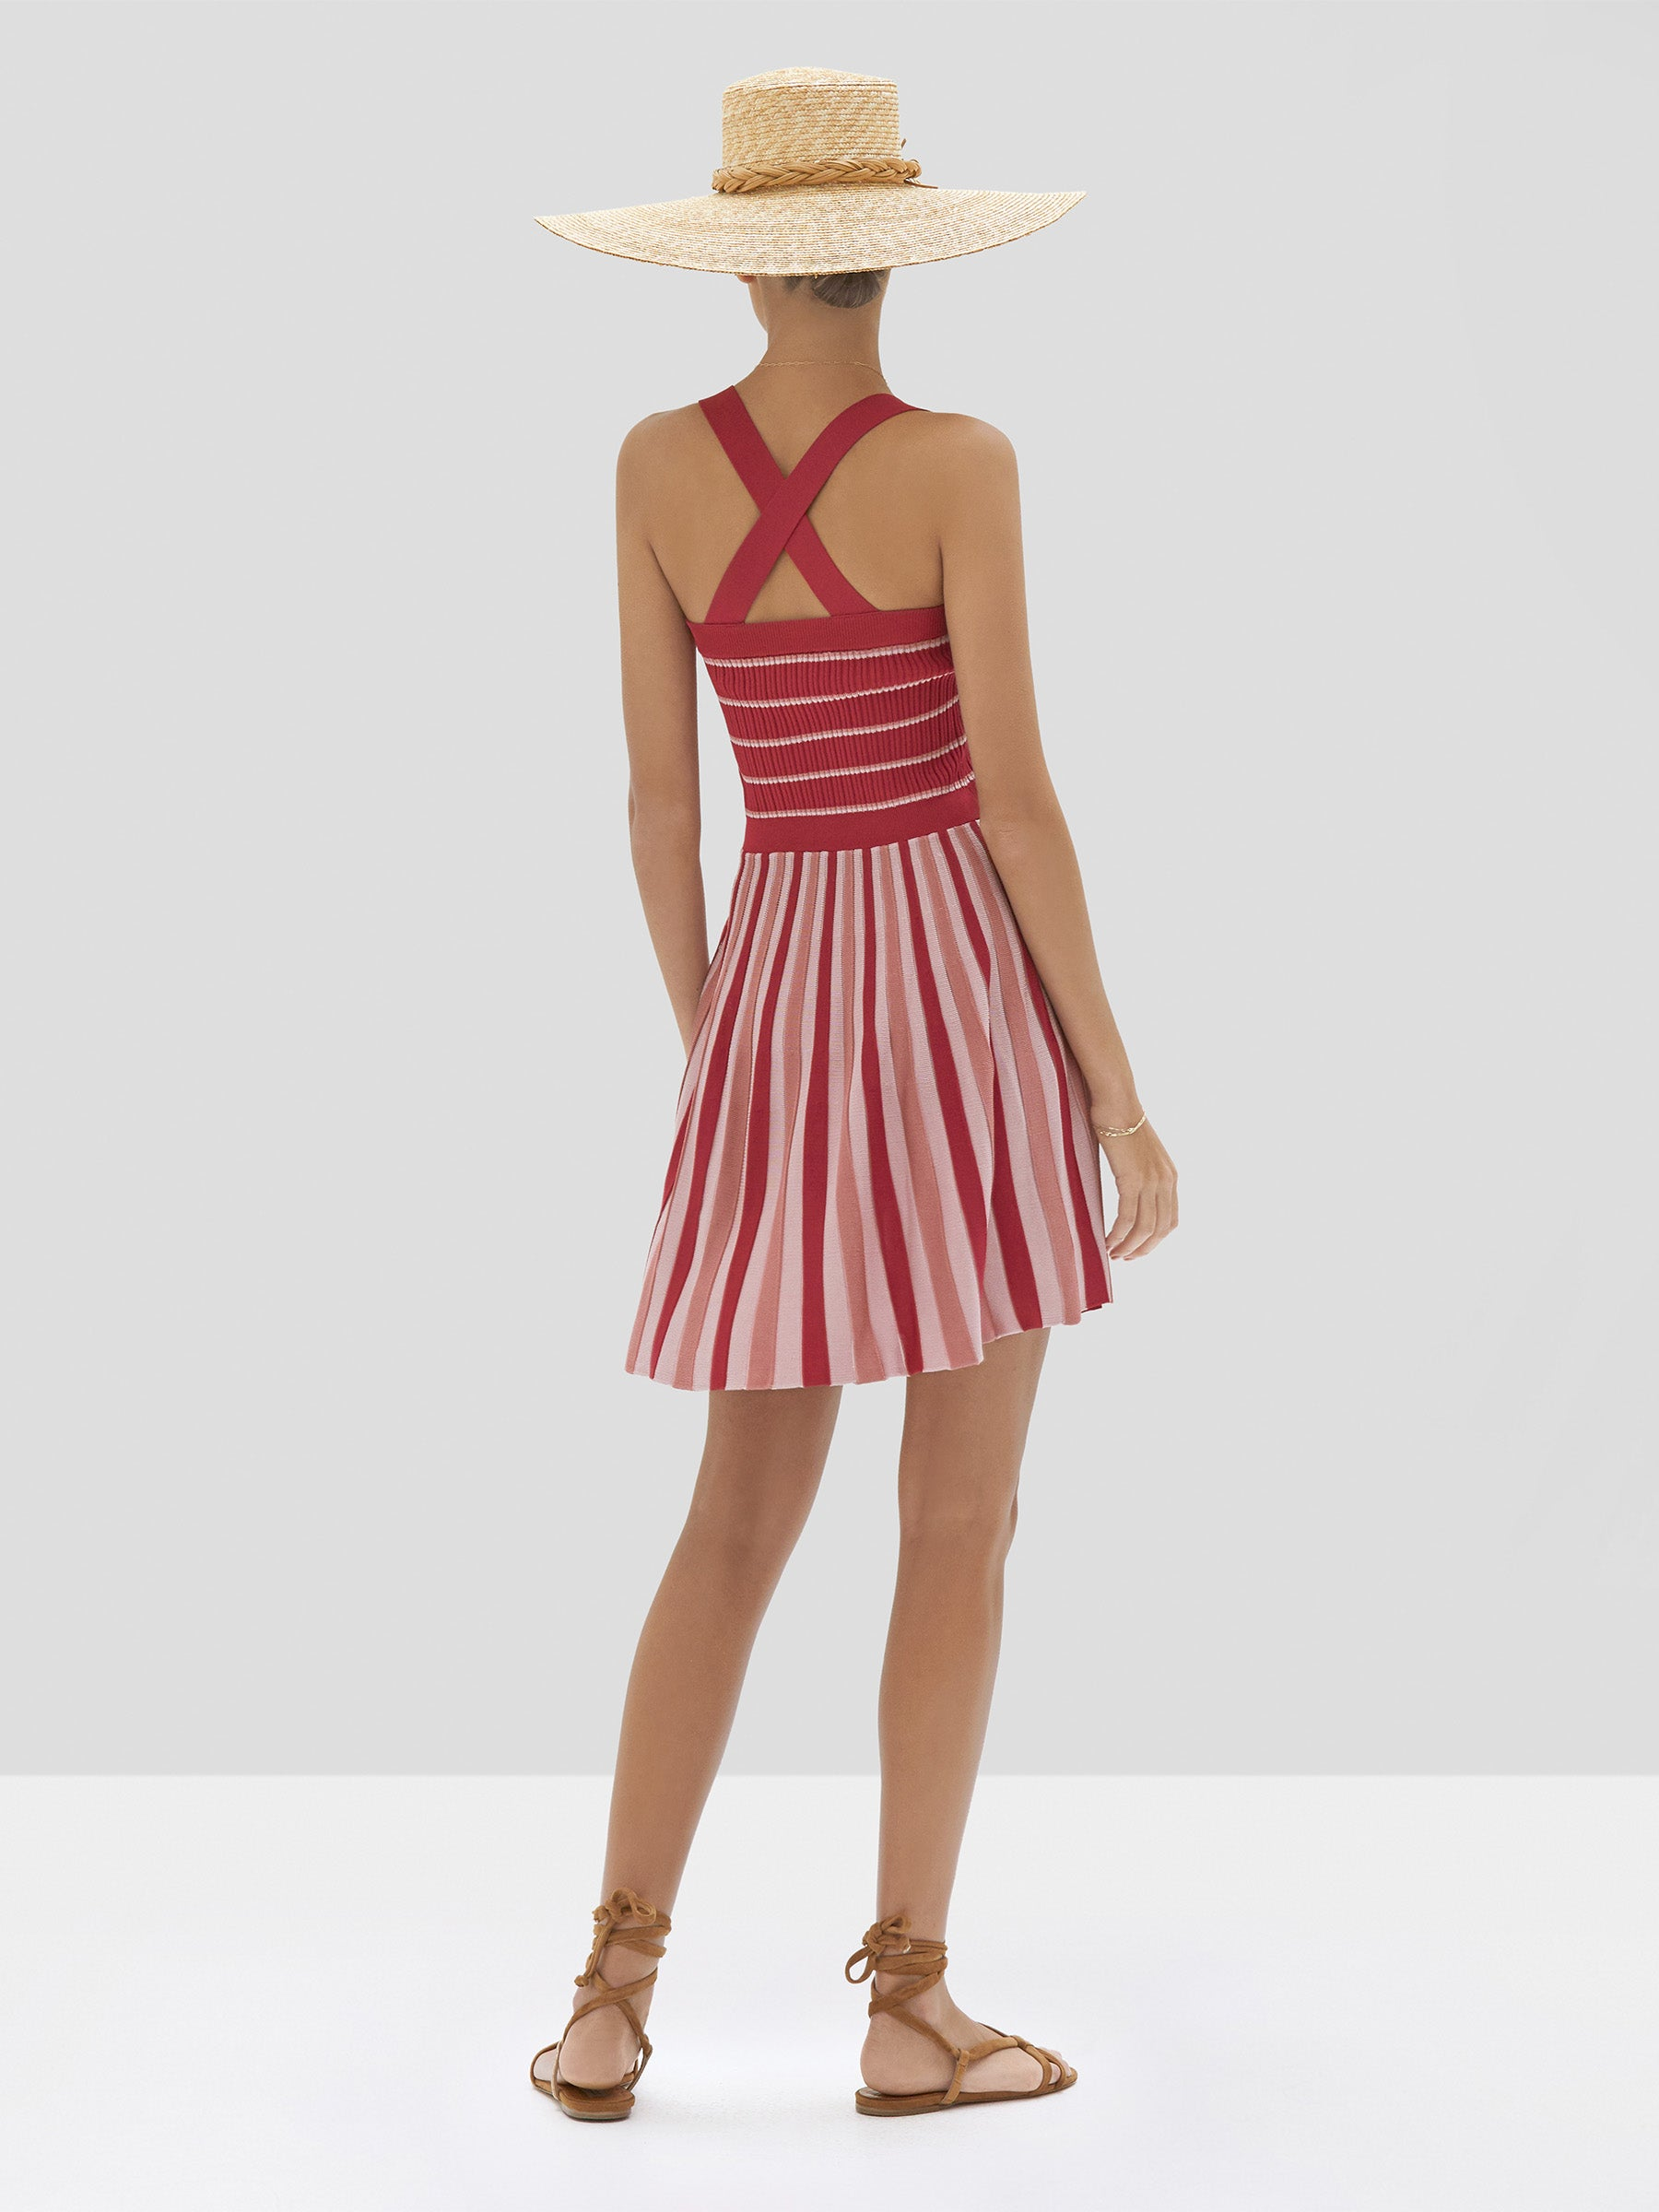 Alexis Lintov Dress in Mauve Stripes from Spring Summer 2020 Collection - Rear View